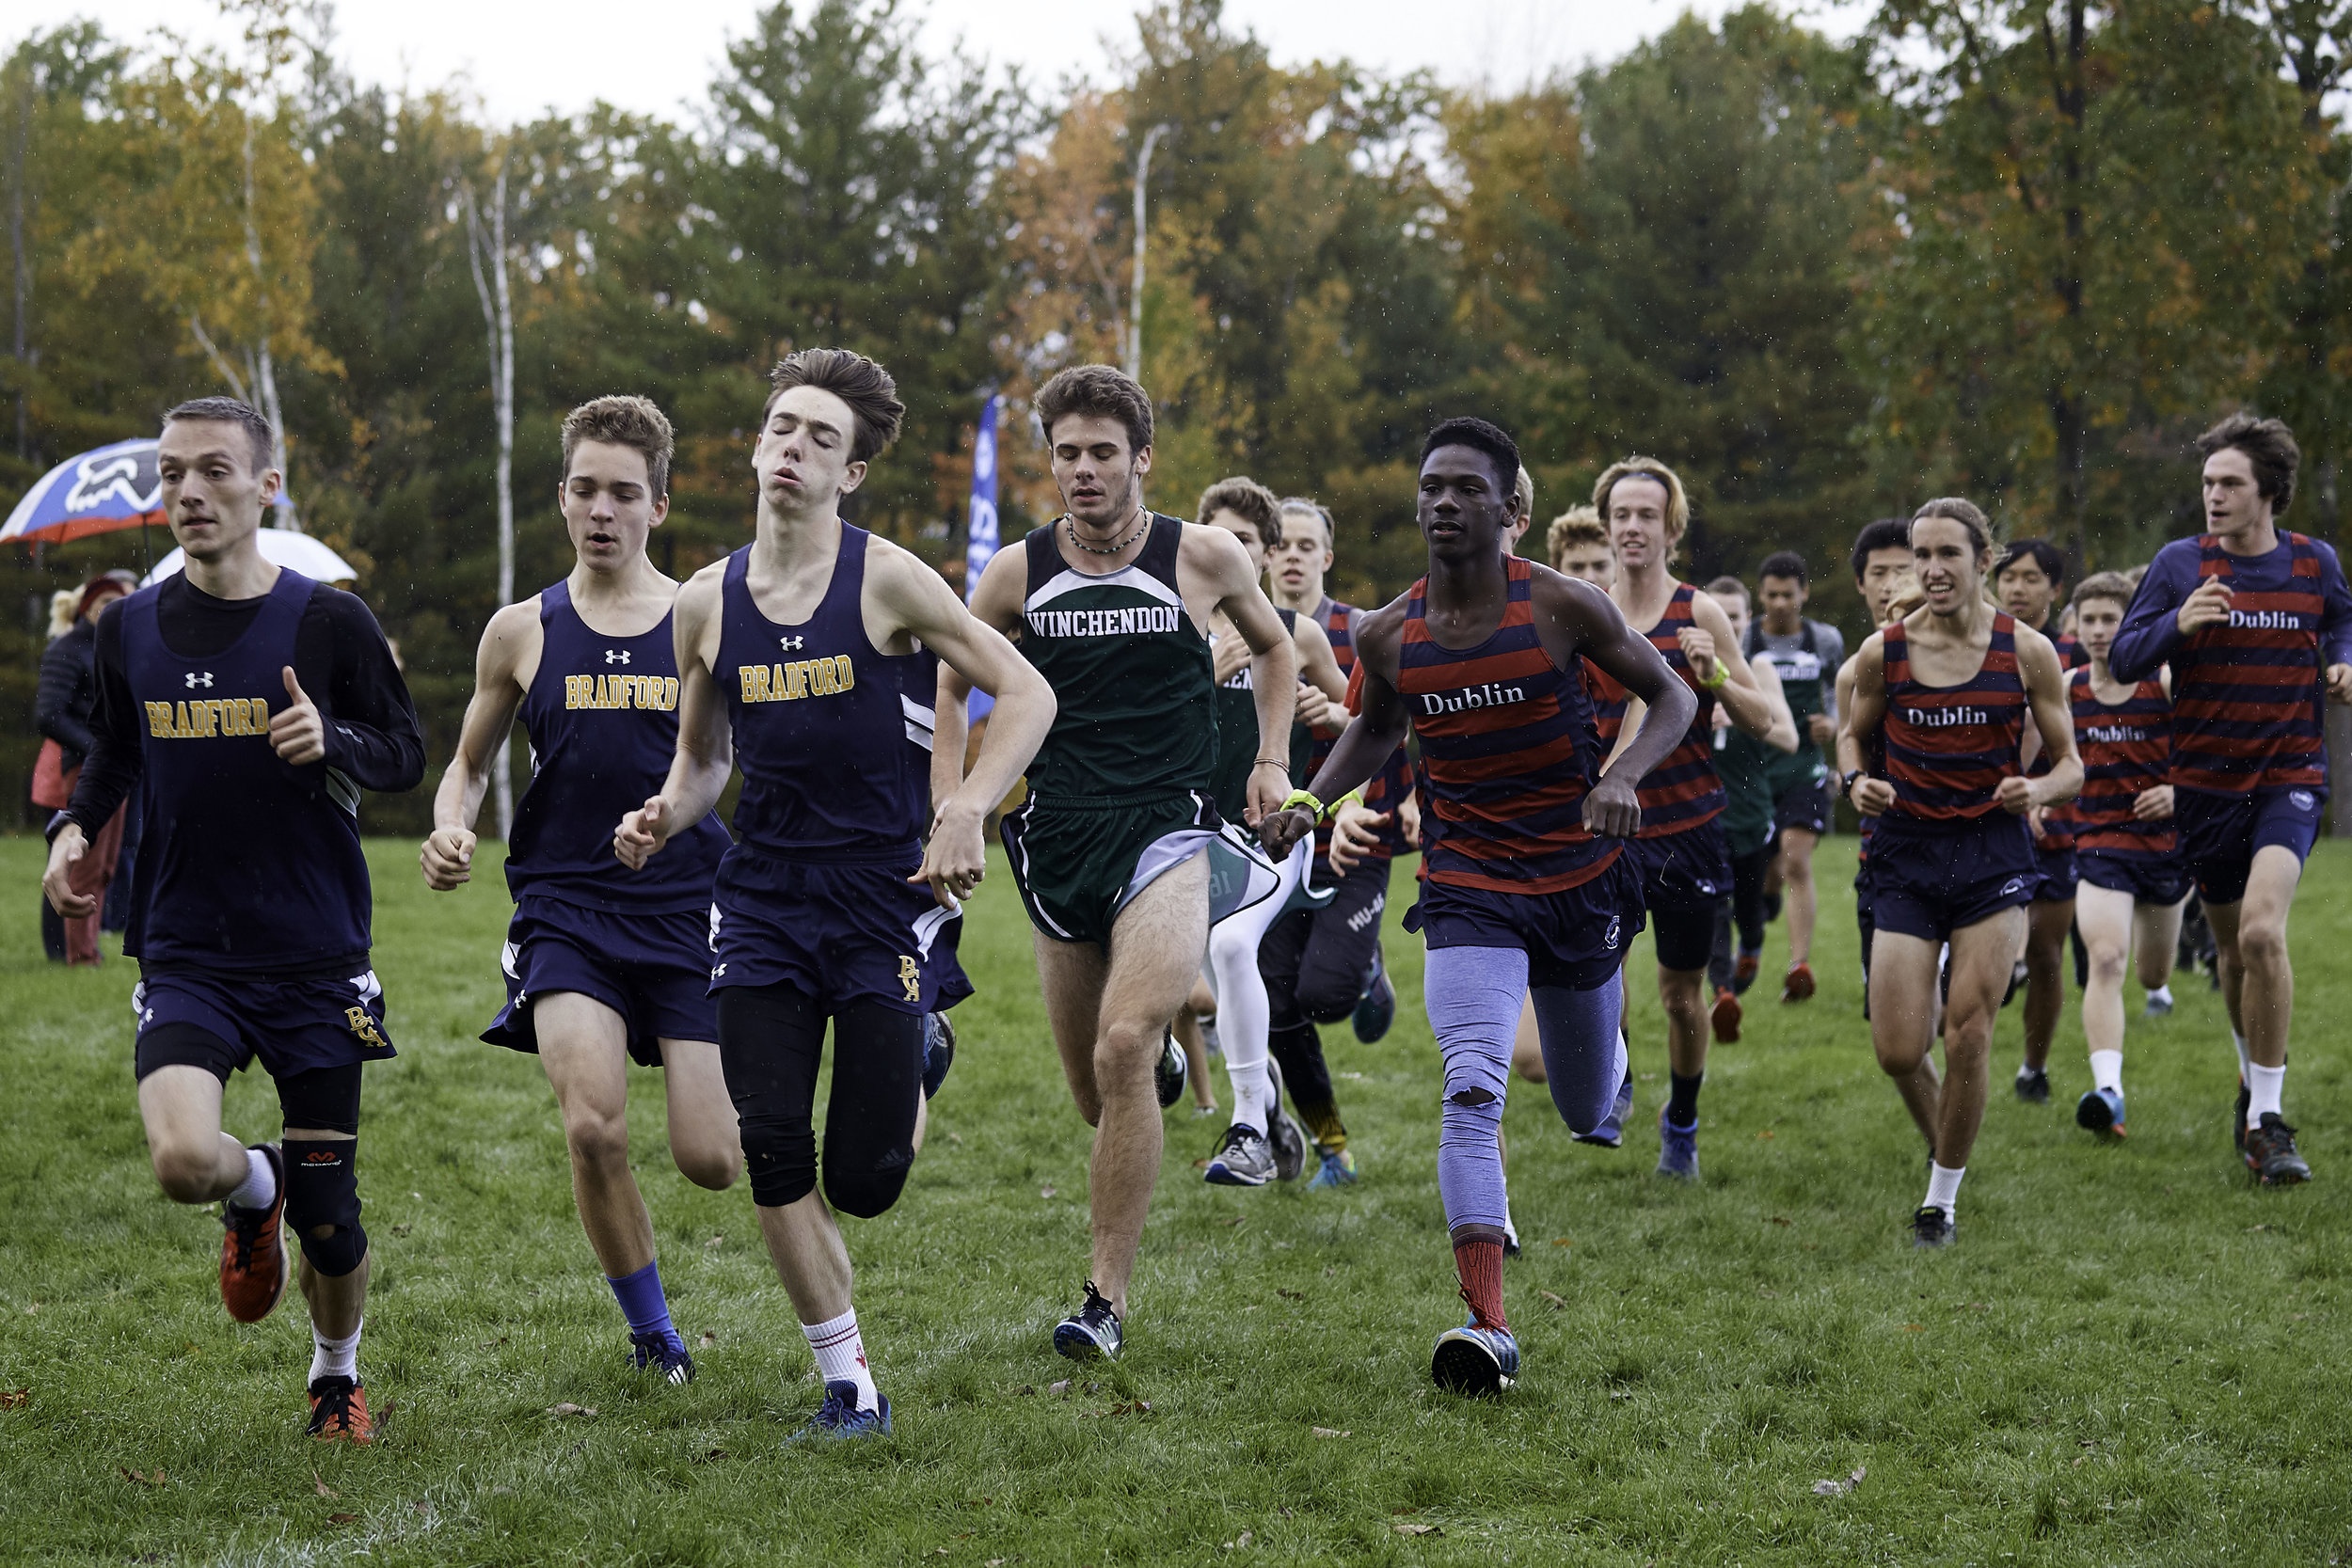 Dublion Invitational - October 12, 2018 - 136427.jpg